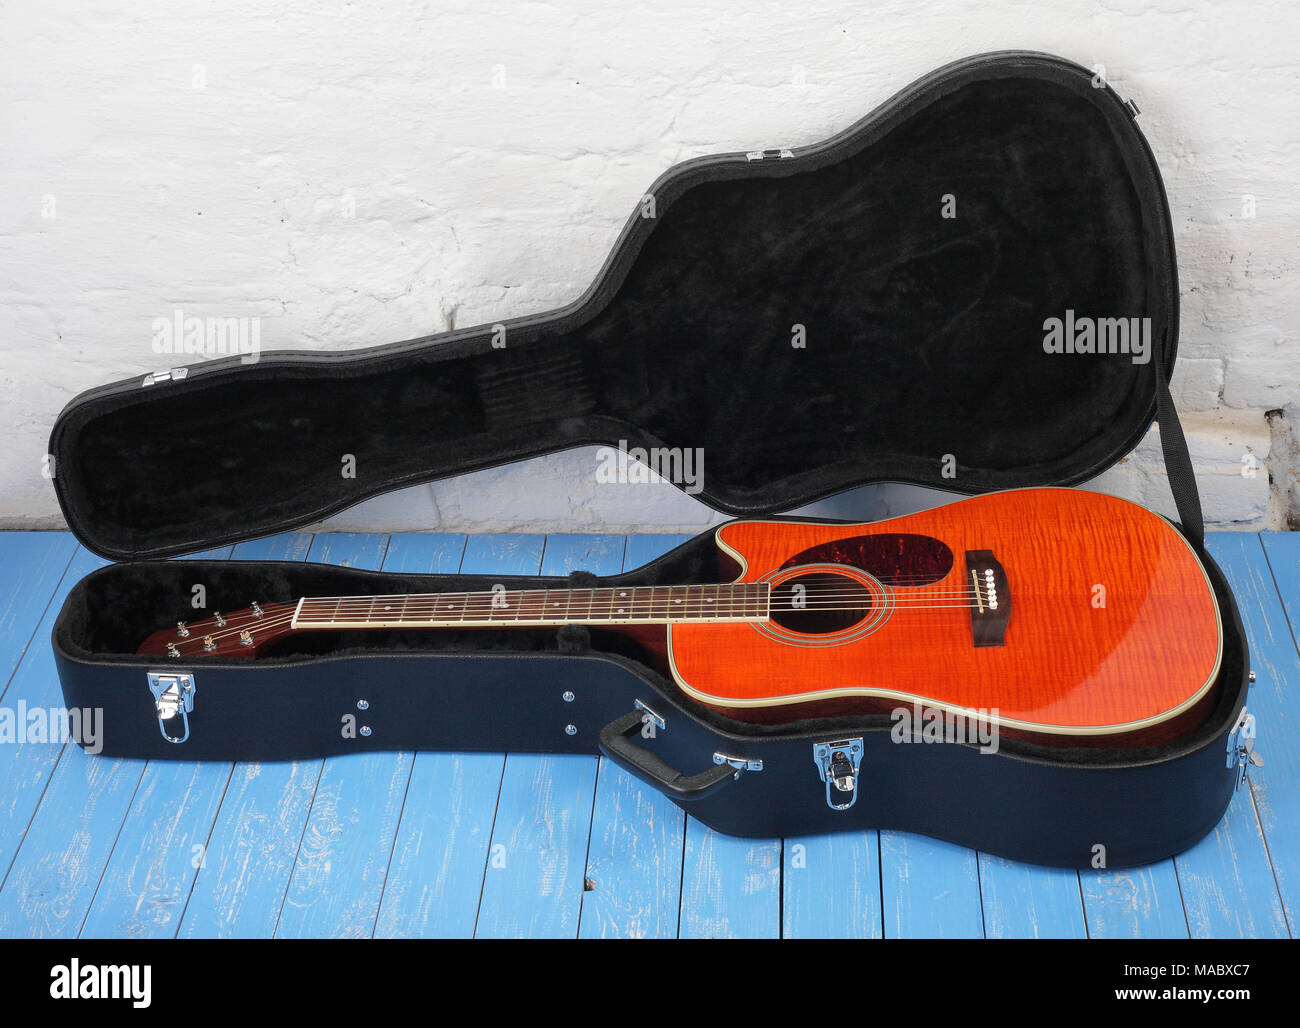 Musical instrument - Orange flame maple, acoustic guitar in hard case on a blue wood, and white brock wall background. Stock Photo